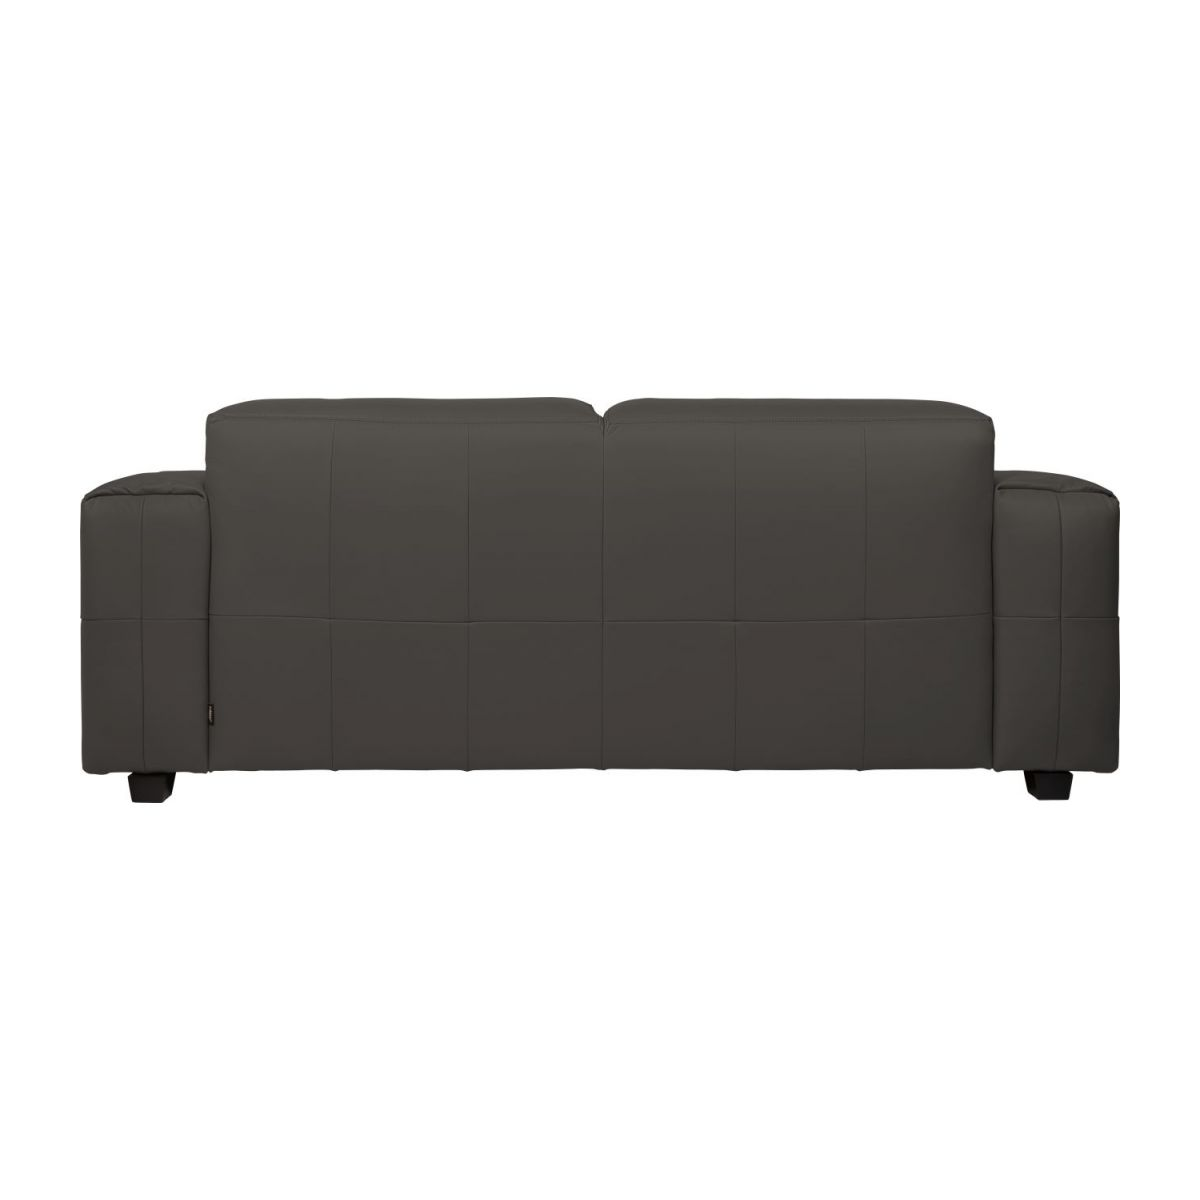 4 seater sofa in Savoy semi-aniline leather, dark brown amaretto n°5